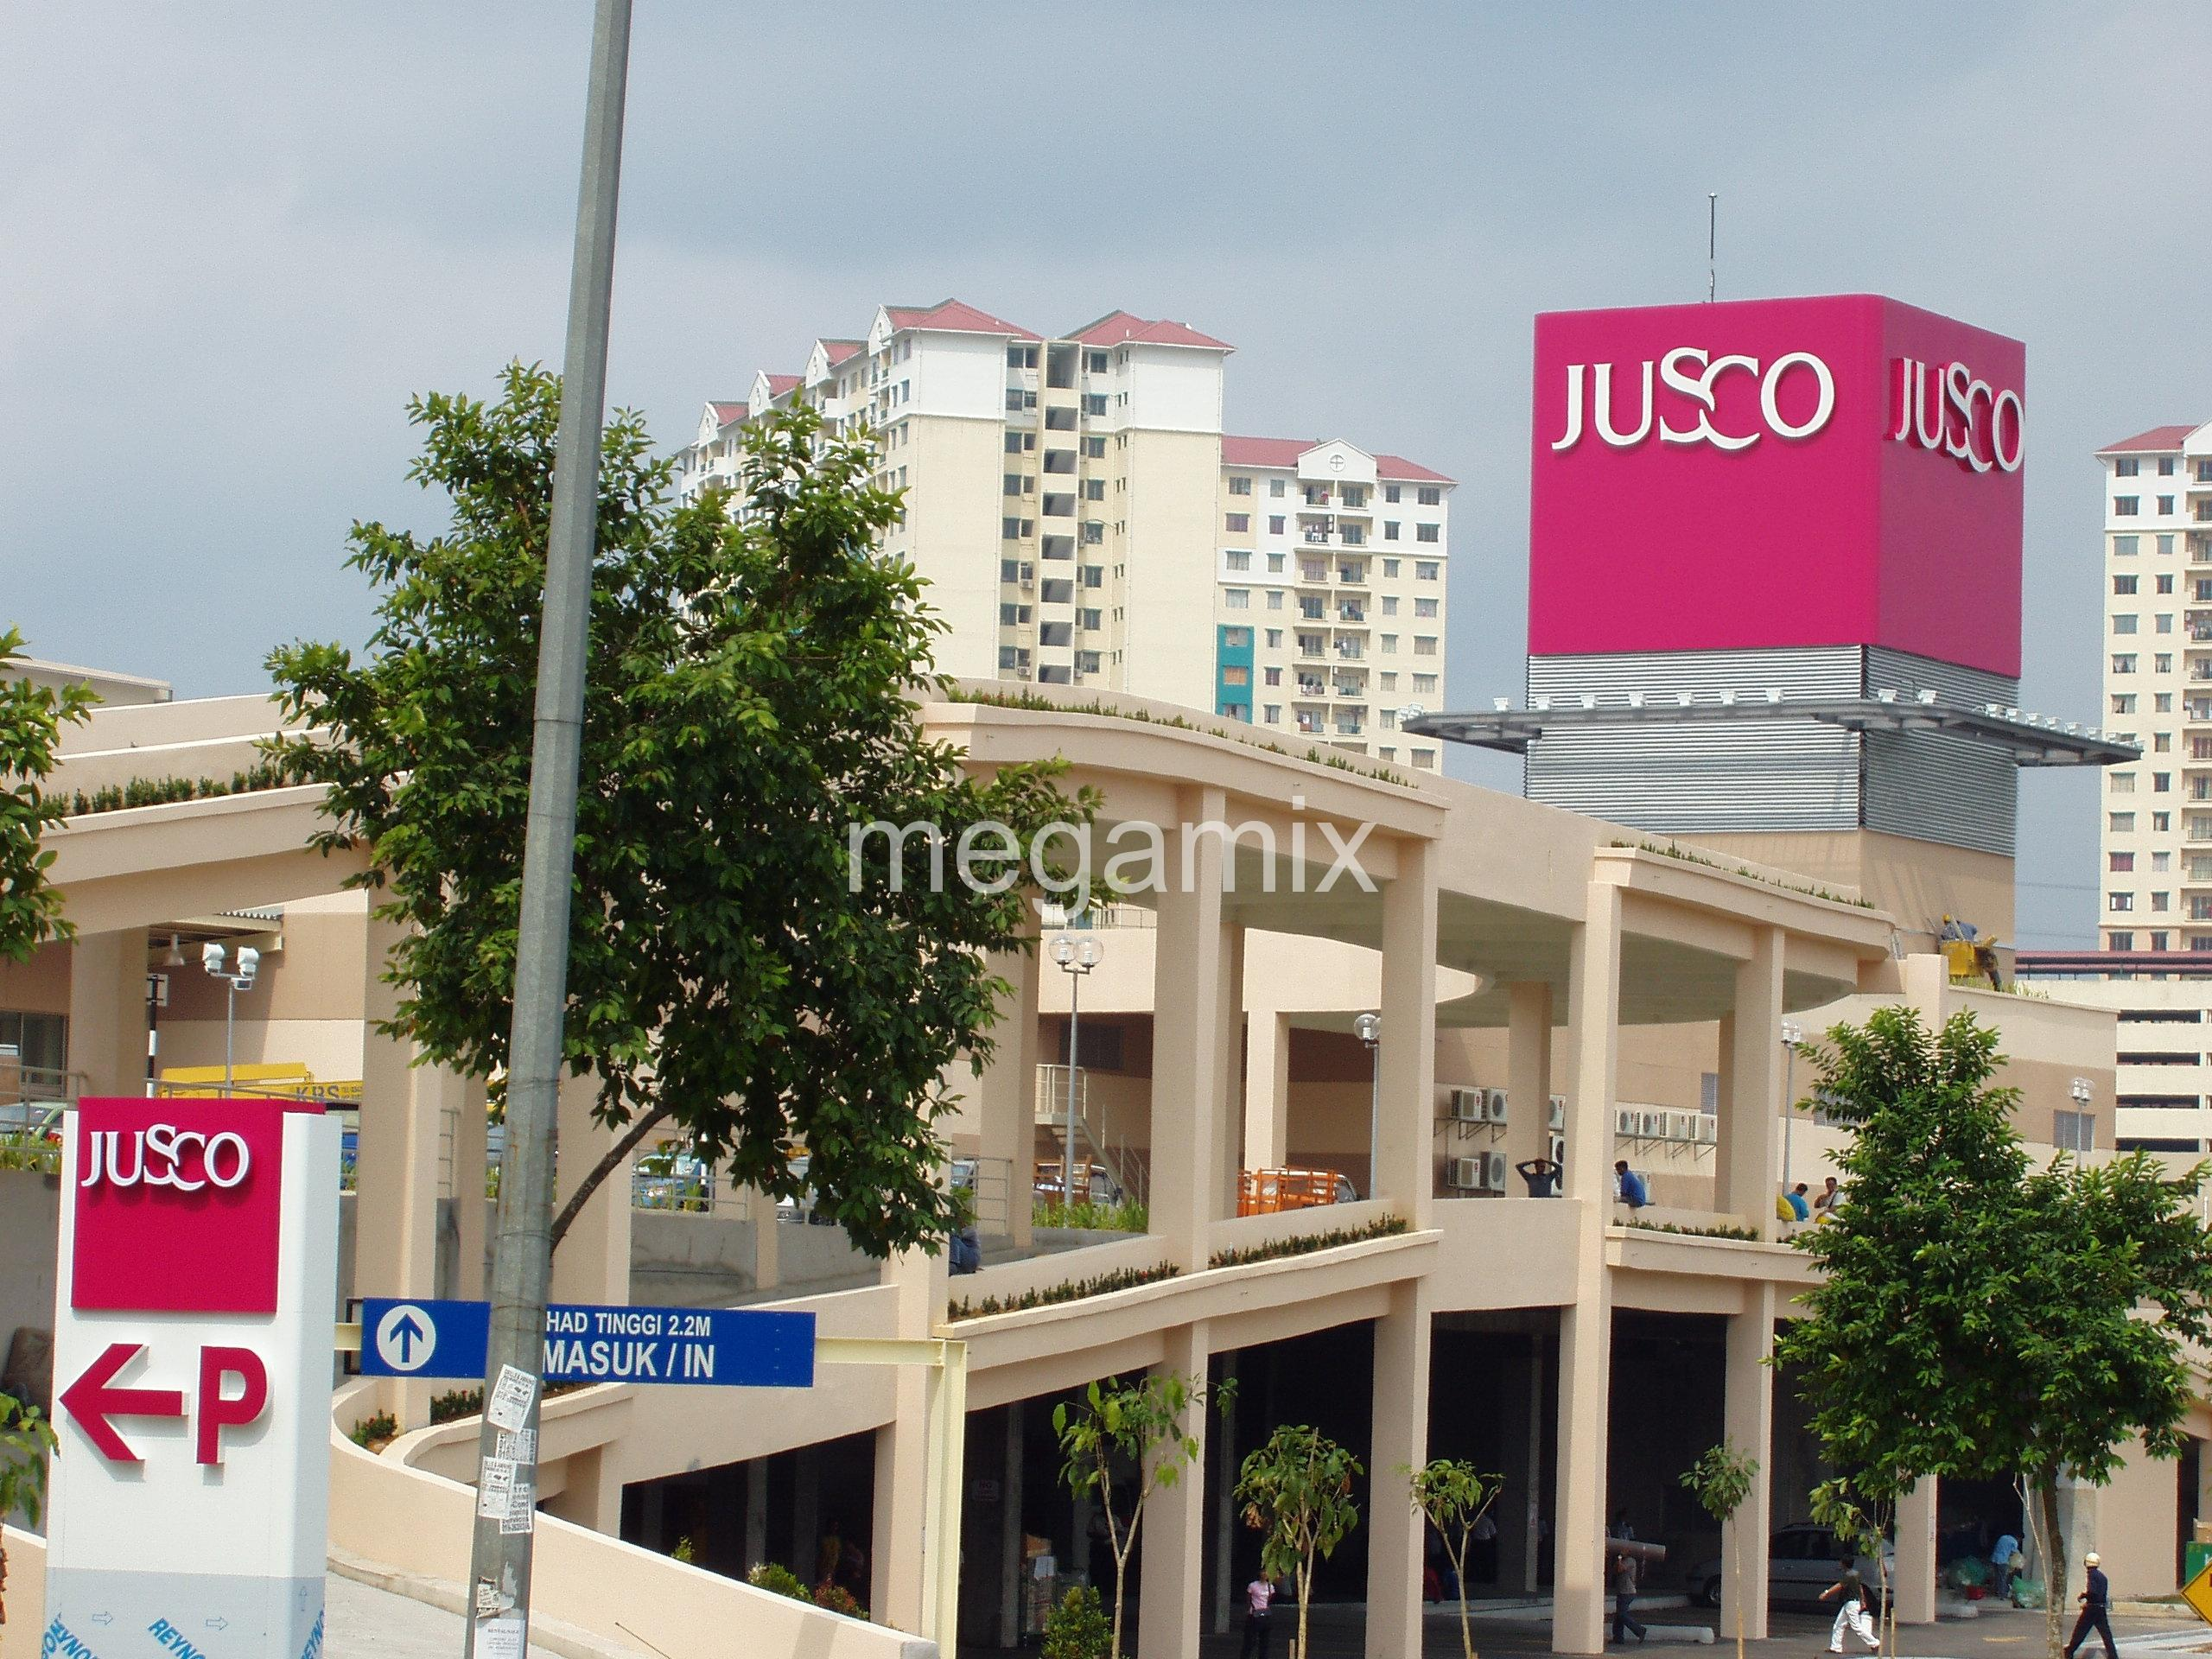 aeon jusco Jusco tebrau city - johor bahru forum asia  malaysia  johor   tesco and jusco is different stye of shopping, tesco mainly normal foods, groceries.